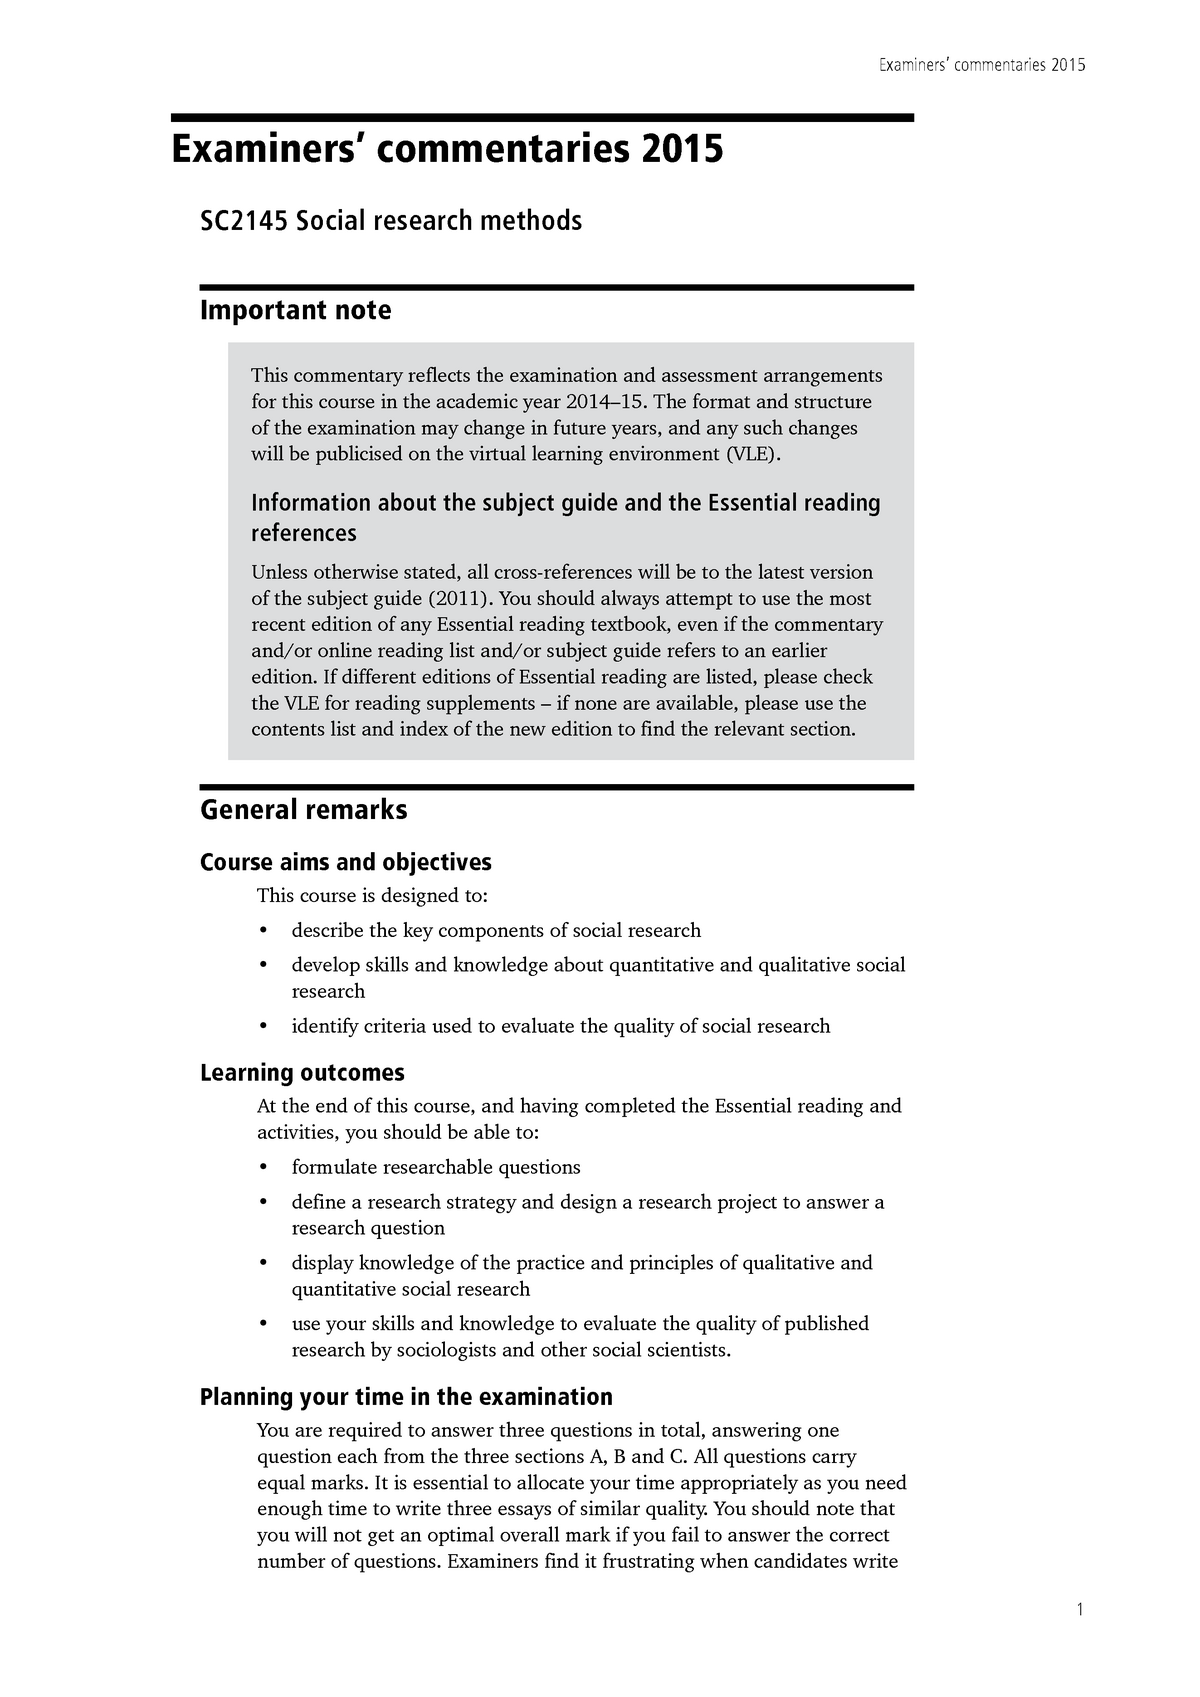 Exam 2015, questions and answers - Social research methods